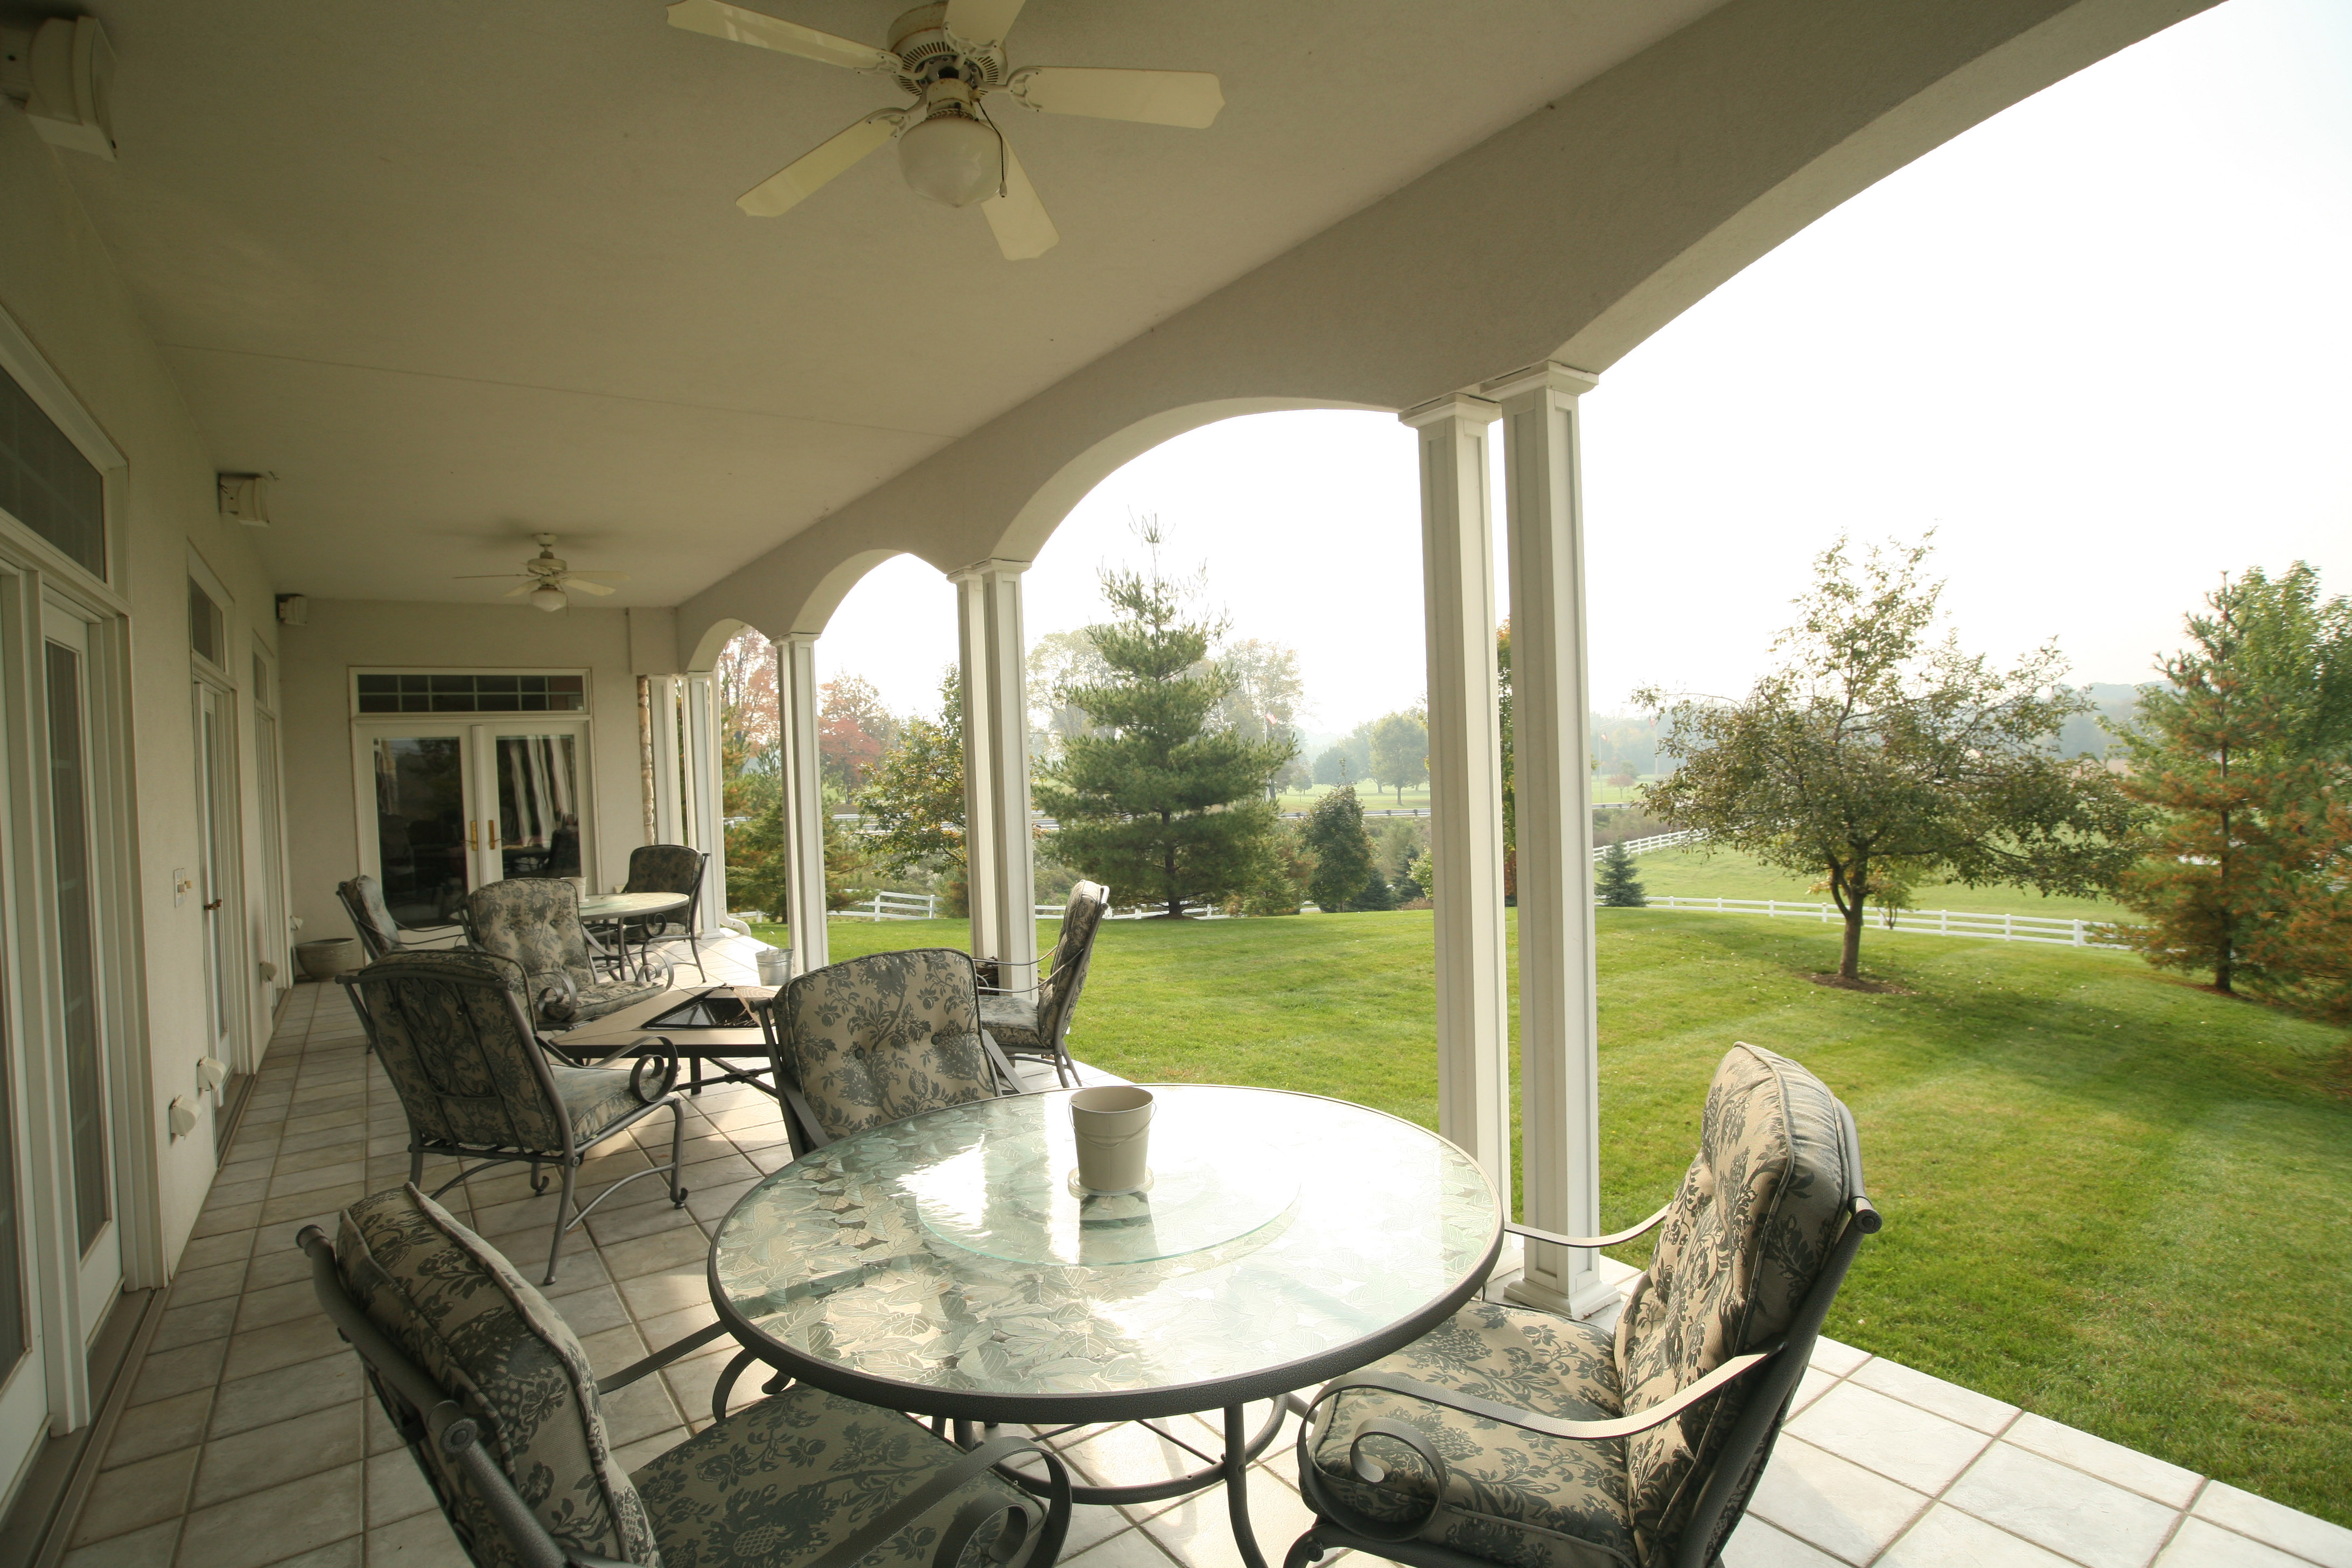 Partial Hospitalization Program Back Porch Overlooking Scenic Pastures